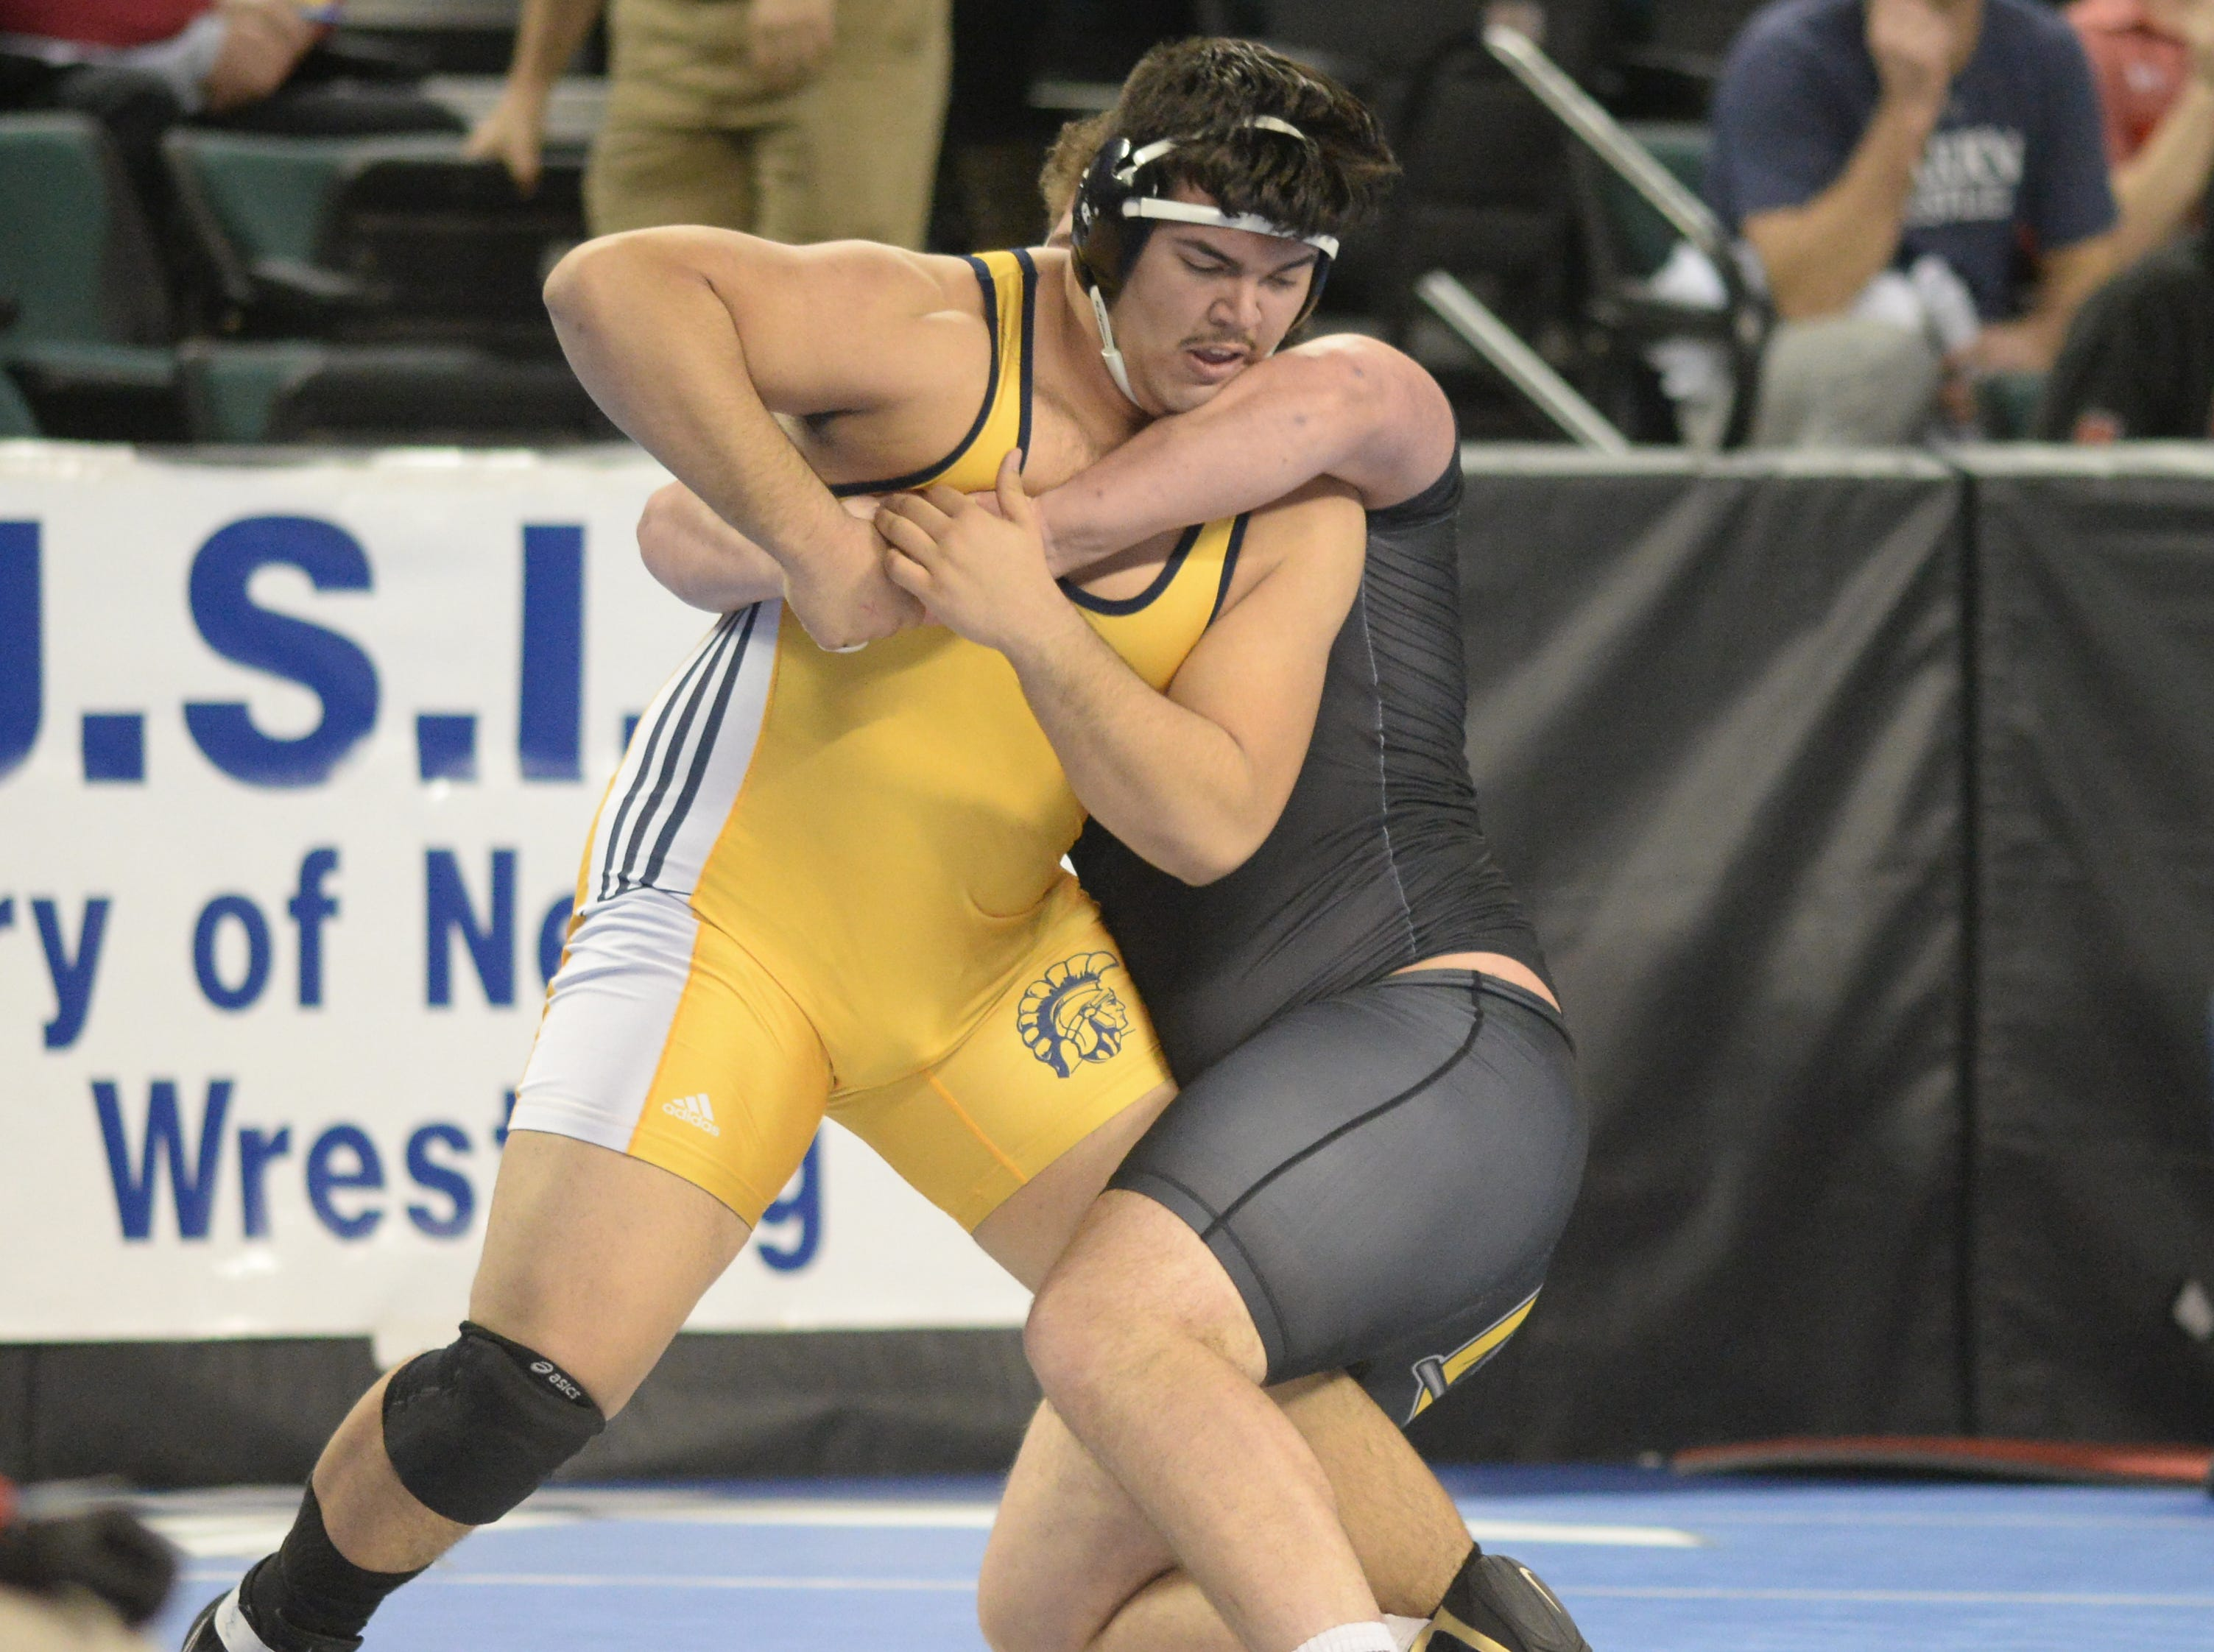 Franklin's Marcus Estevez wrestles St. John Vianney's Paul Liseno in a 285-pound quarterfinal bout during the NJSIAA Individual Wrestling Championships at Boardwalk Hall in Atlantic City, Friday, March 1, 2019.